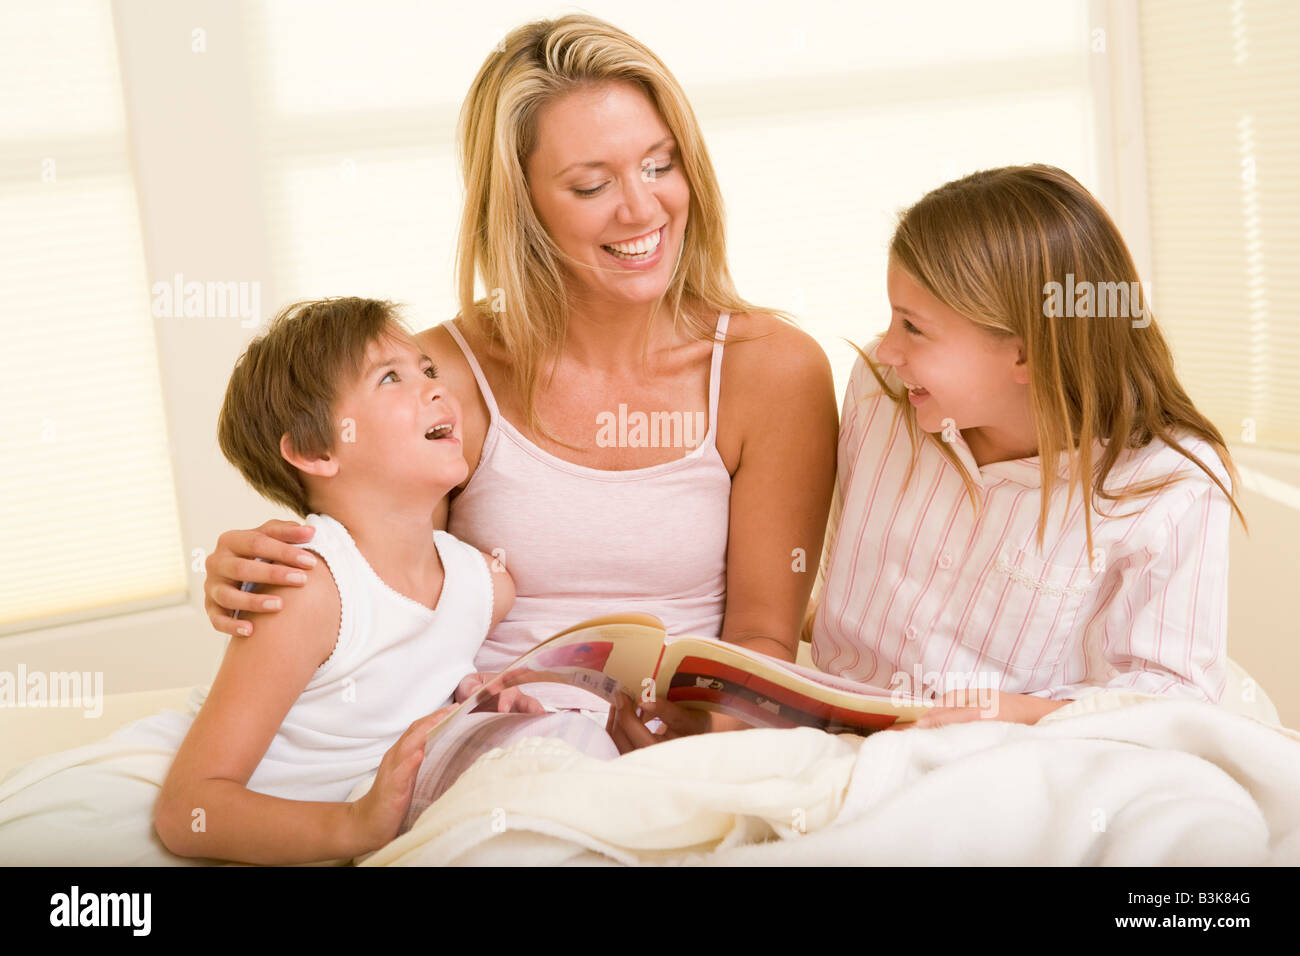 Woman with two young children sitting in bed reading book and smiling - Stock Image